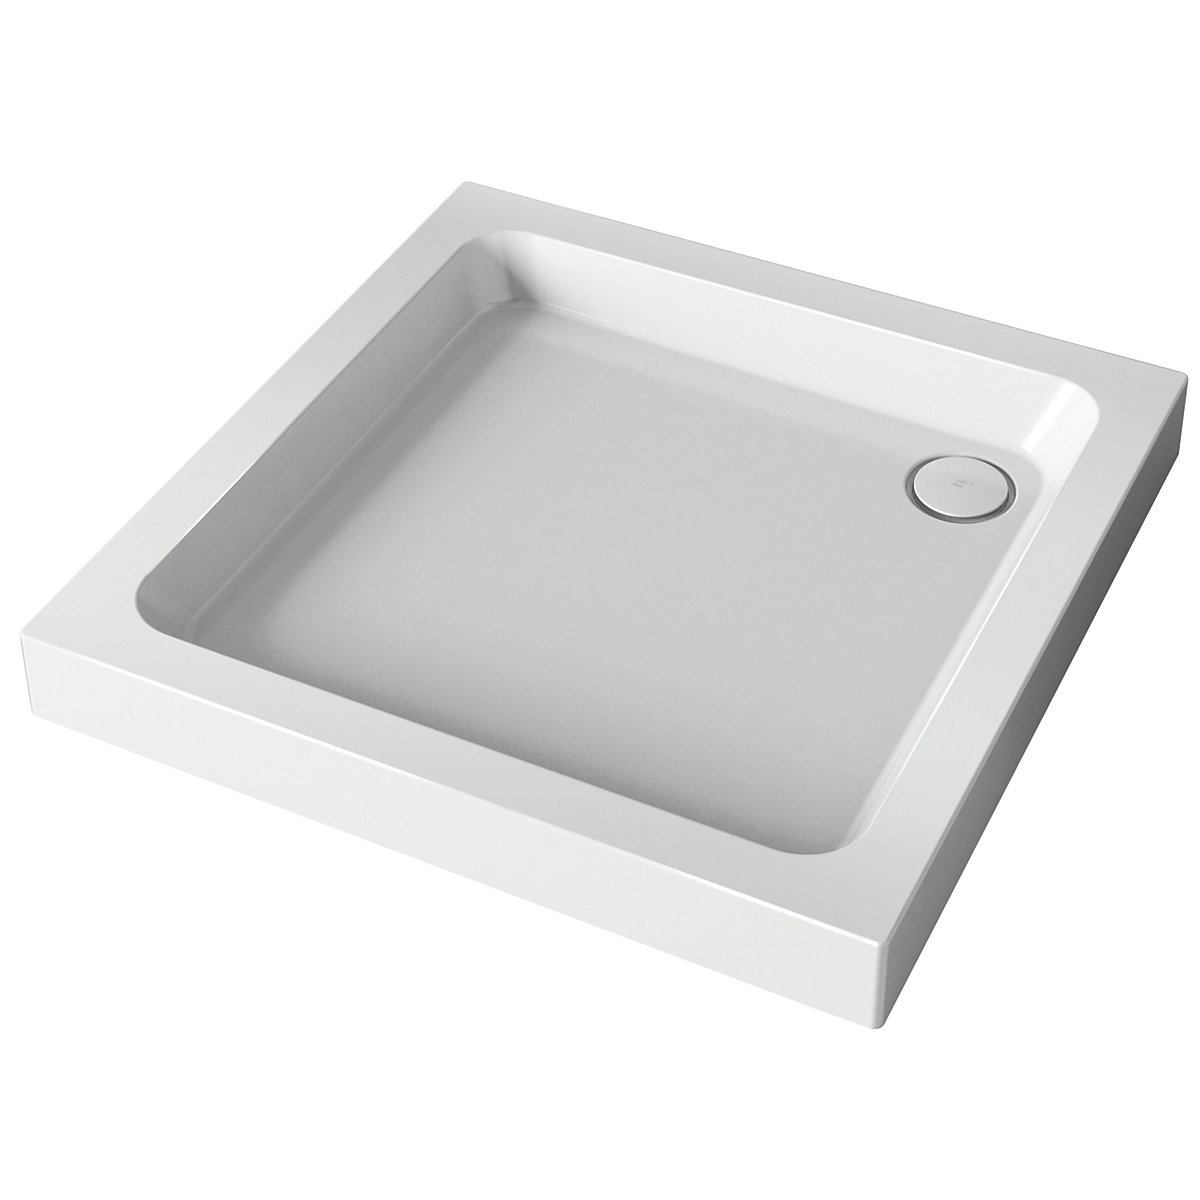 Walk in Shower Trays | Quadrant, Slimline, Anti-slip | Travis Perkins